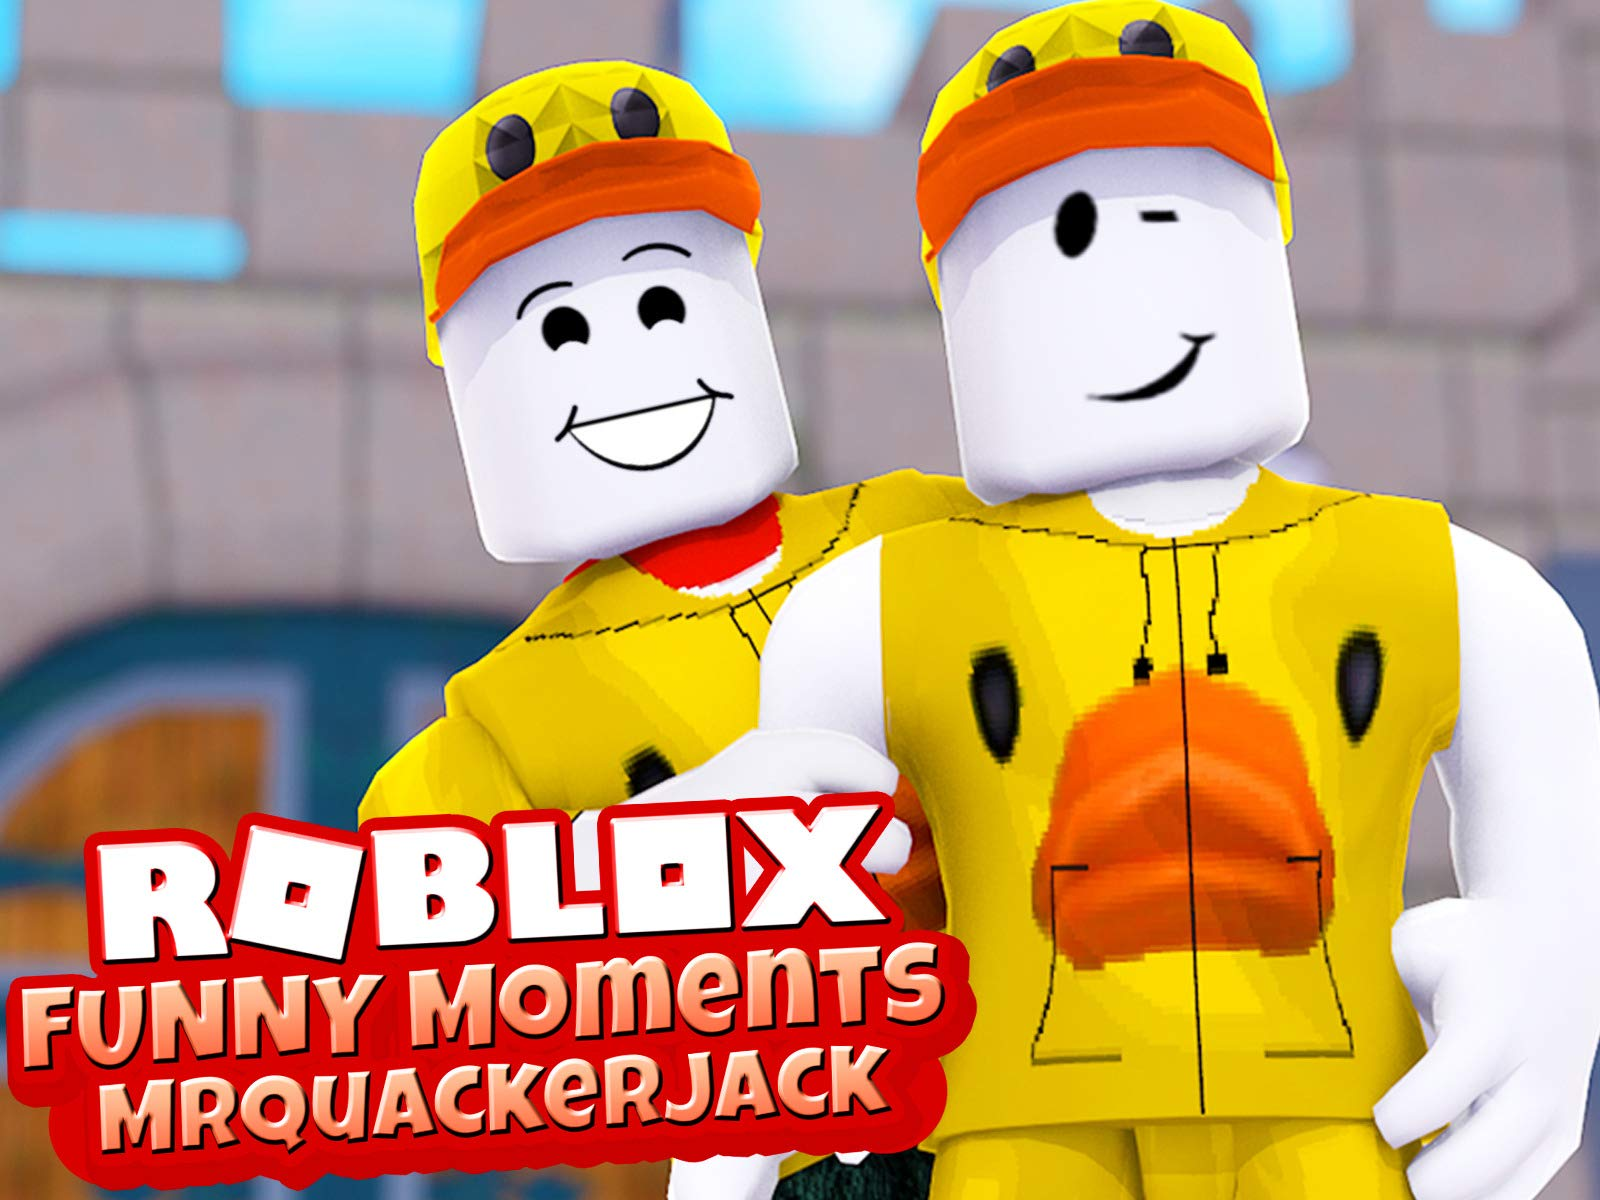 Clip: Roblox Funny Moments (MrQuackerJack)